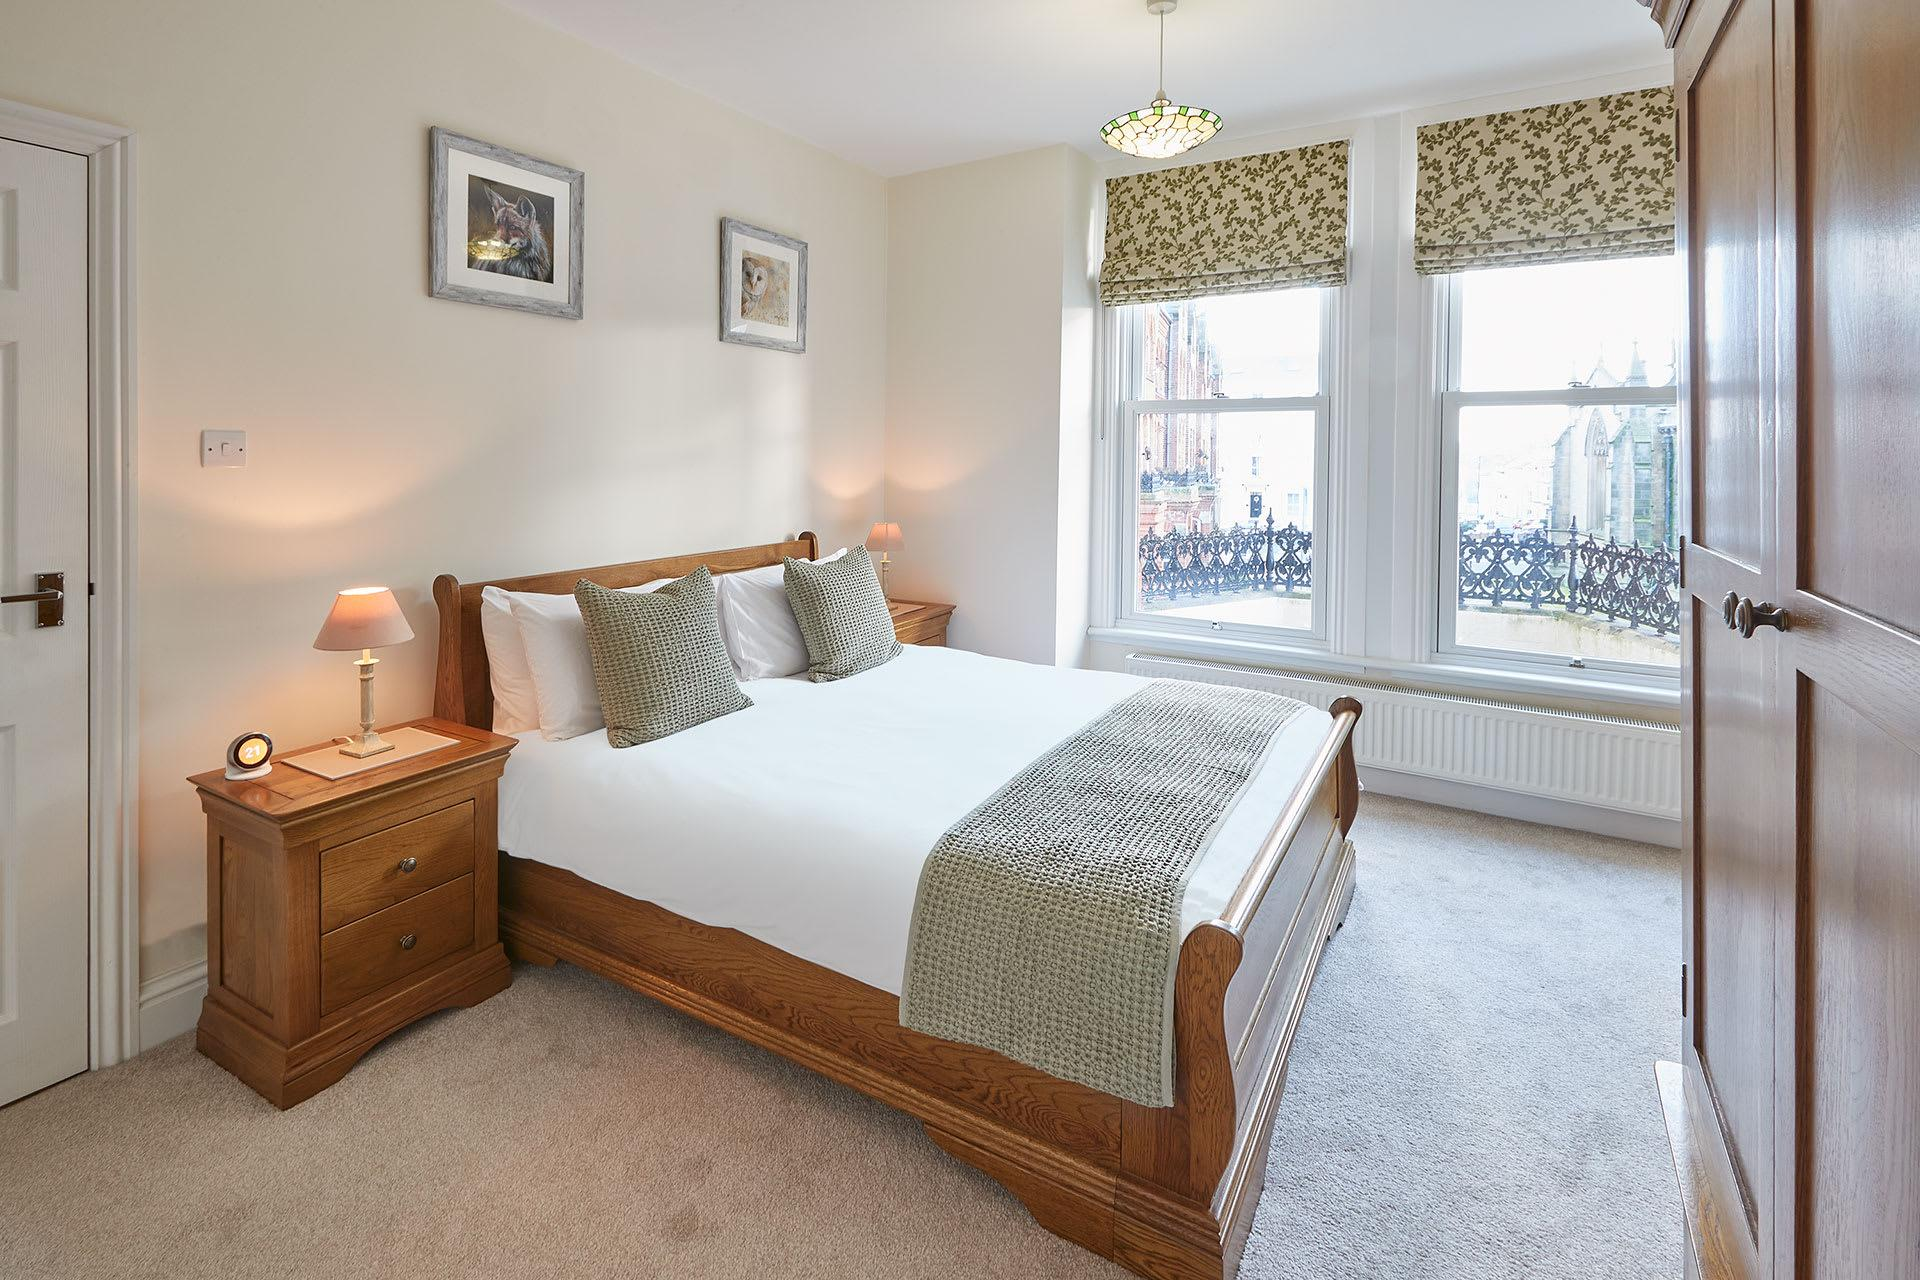 Property Image 1 - Delightful Modern Apartment with Free Parking in Whitby